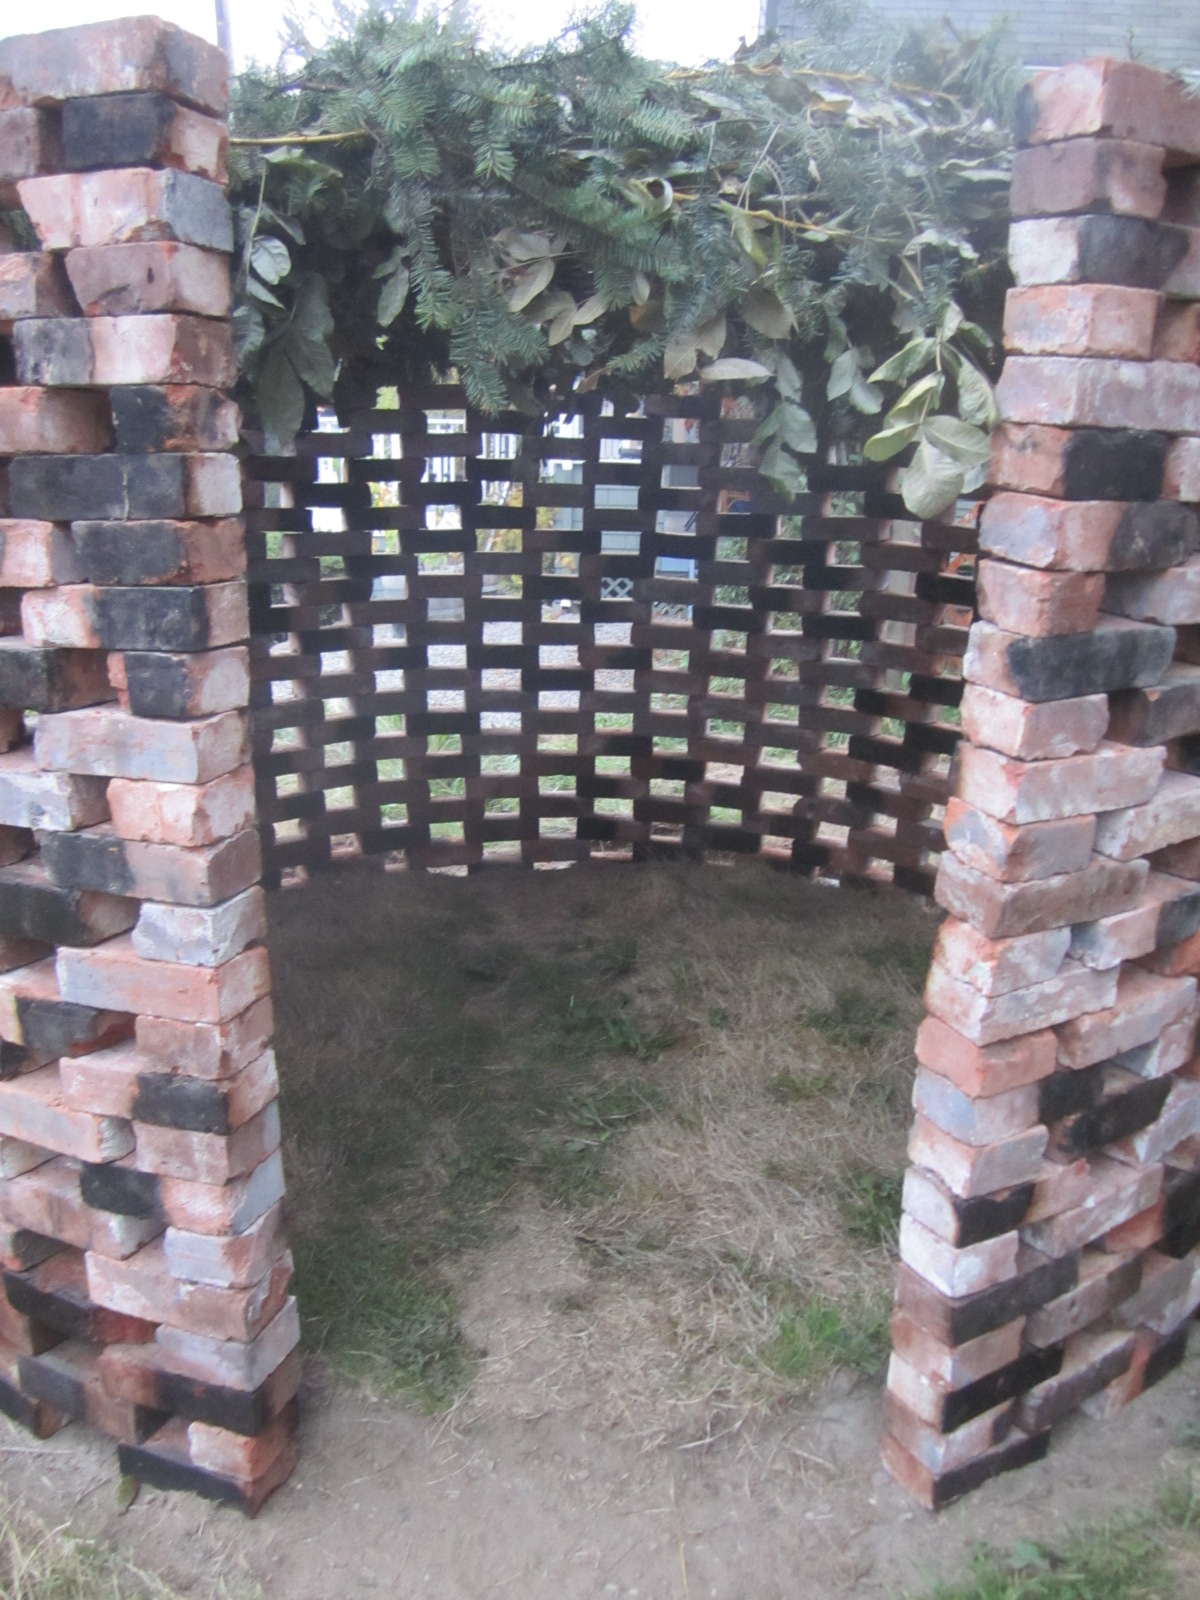 Doorway formed by half bricks